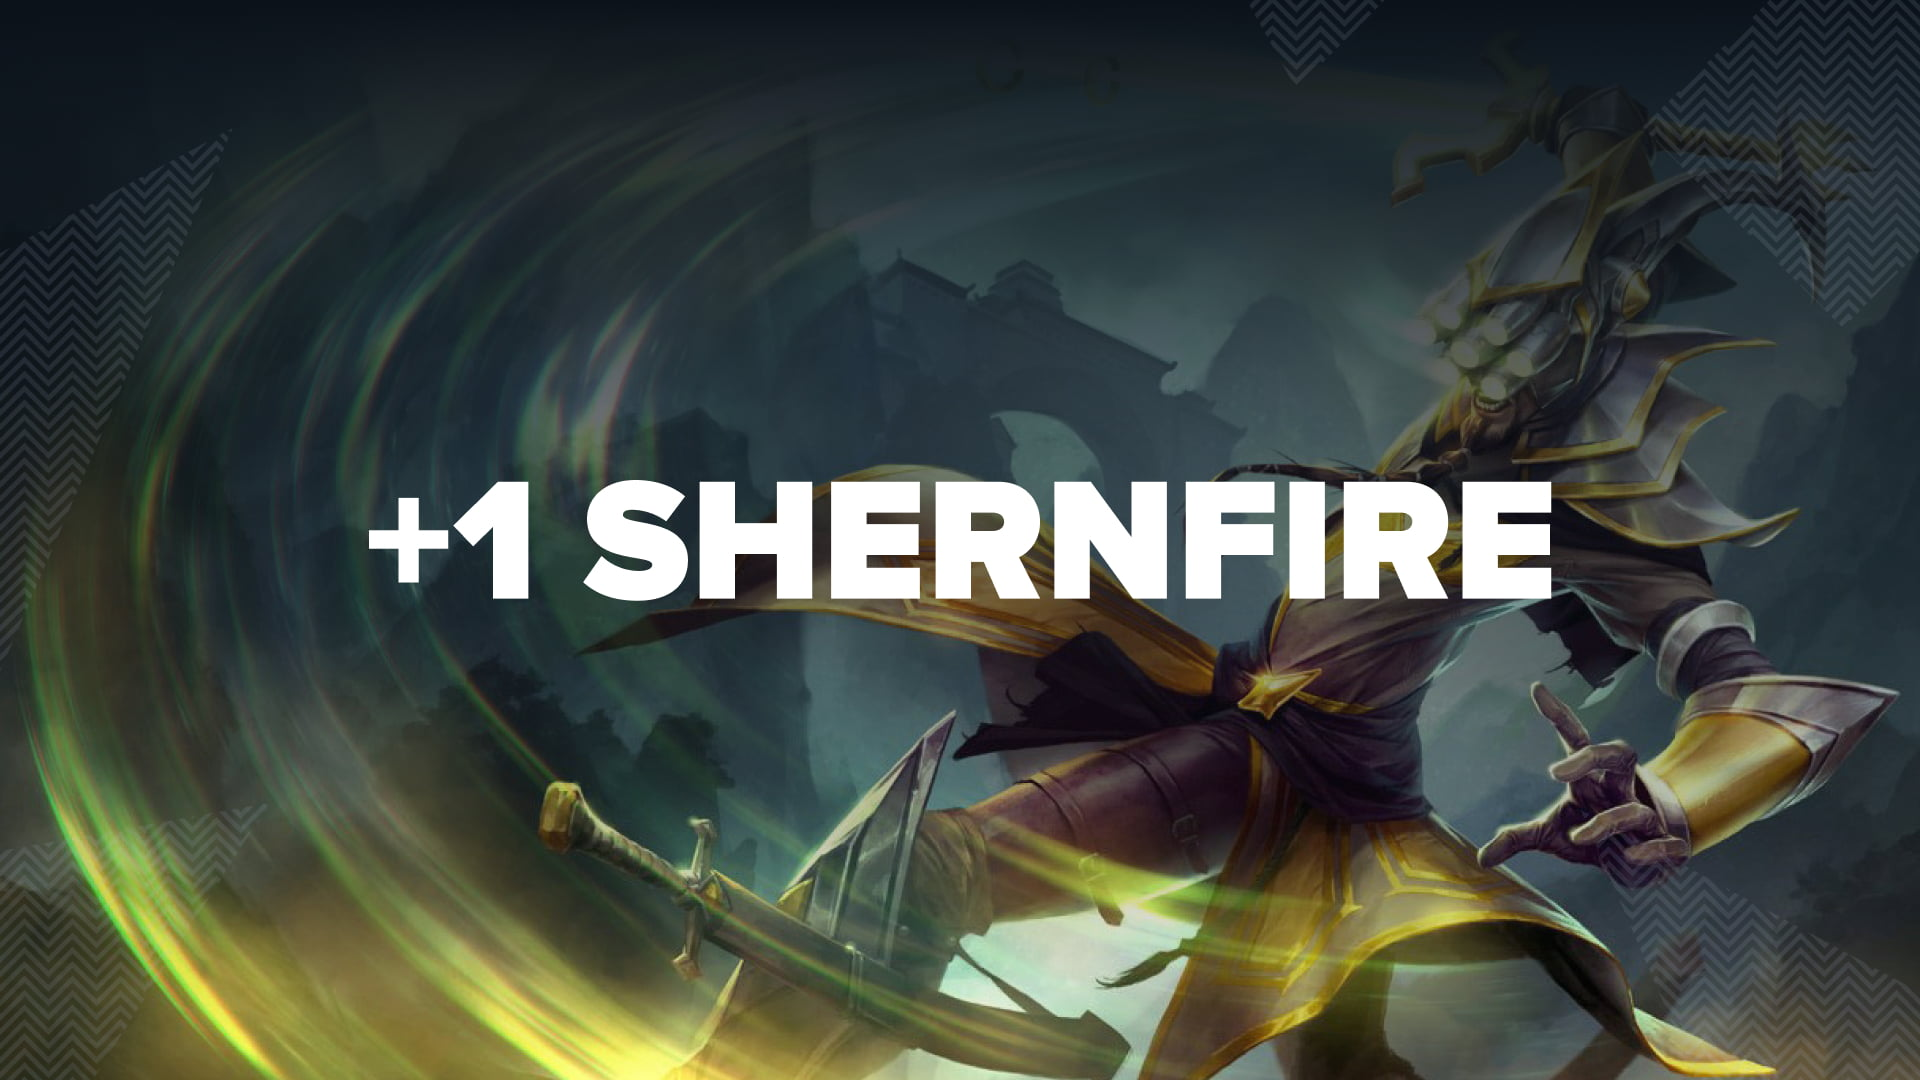 Shernfire rejoins the Wolfpack!